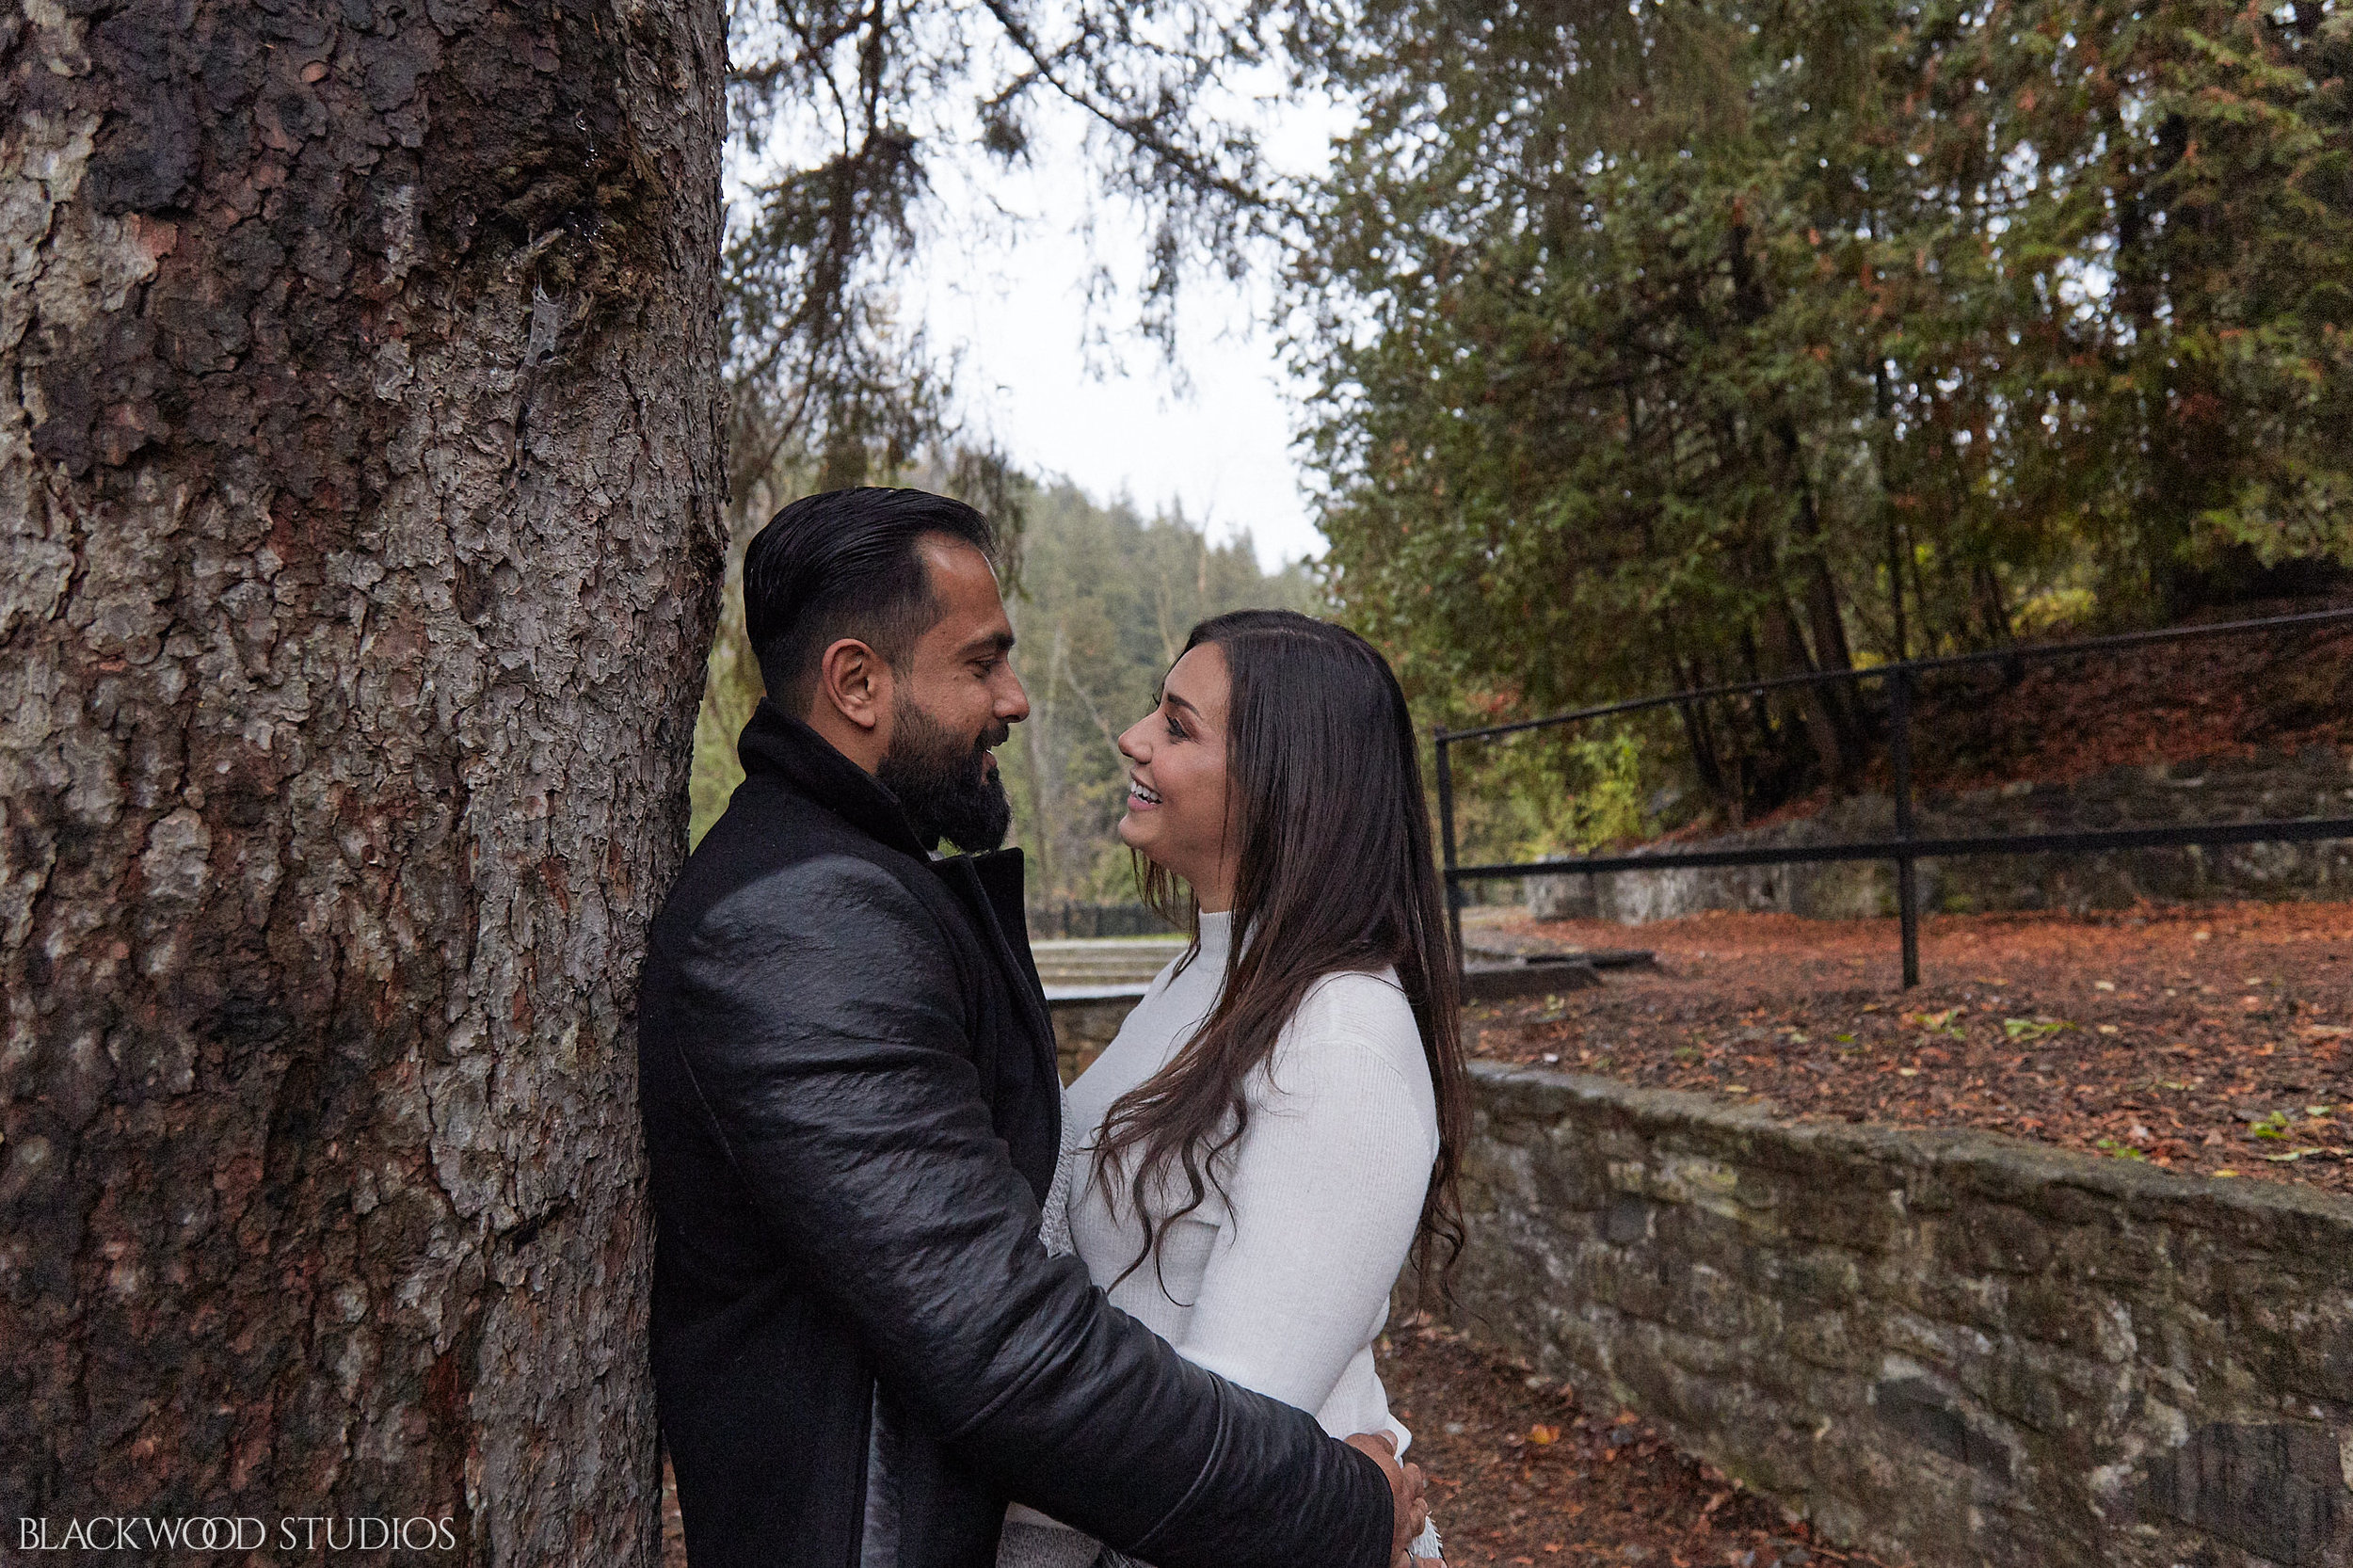 Blackwood-Studios-20181028174830-Farah-and-Zain-Engagement-photography-Belfountain-Conservation-Area-Caledon-Ontario.jpg